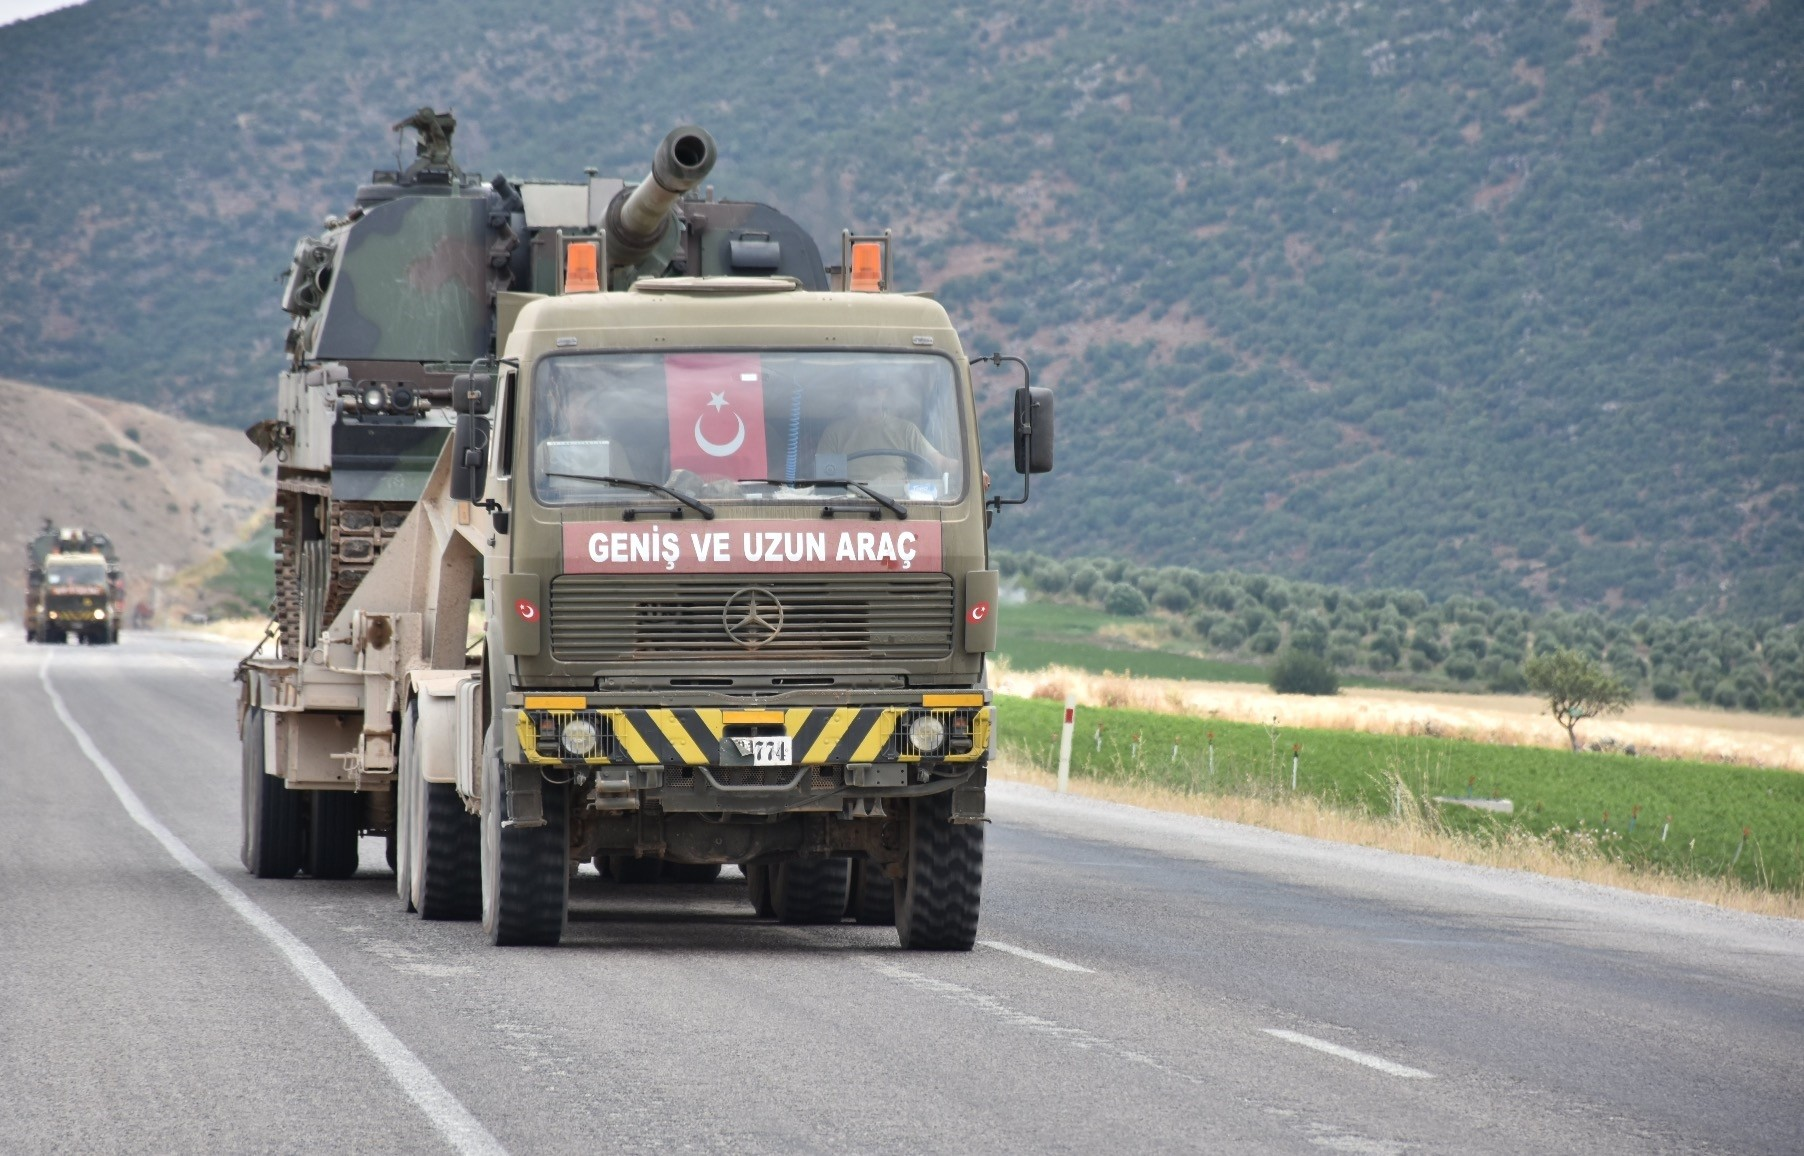 This pictures show the military vehicles loaded with howitzers and ammunitions which reached the Turkish border town of Kilis, near Afrin last week.